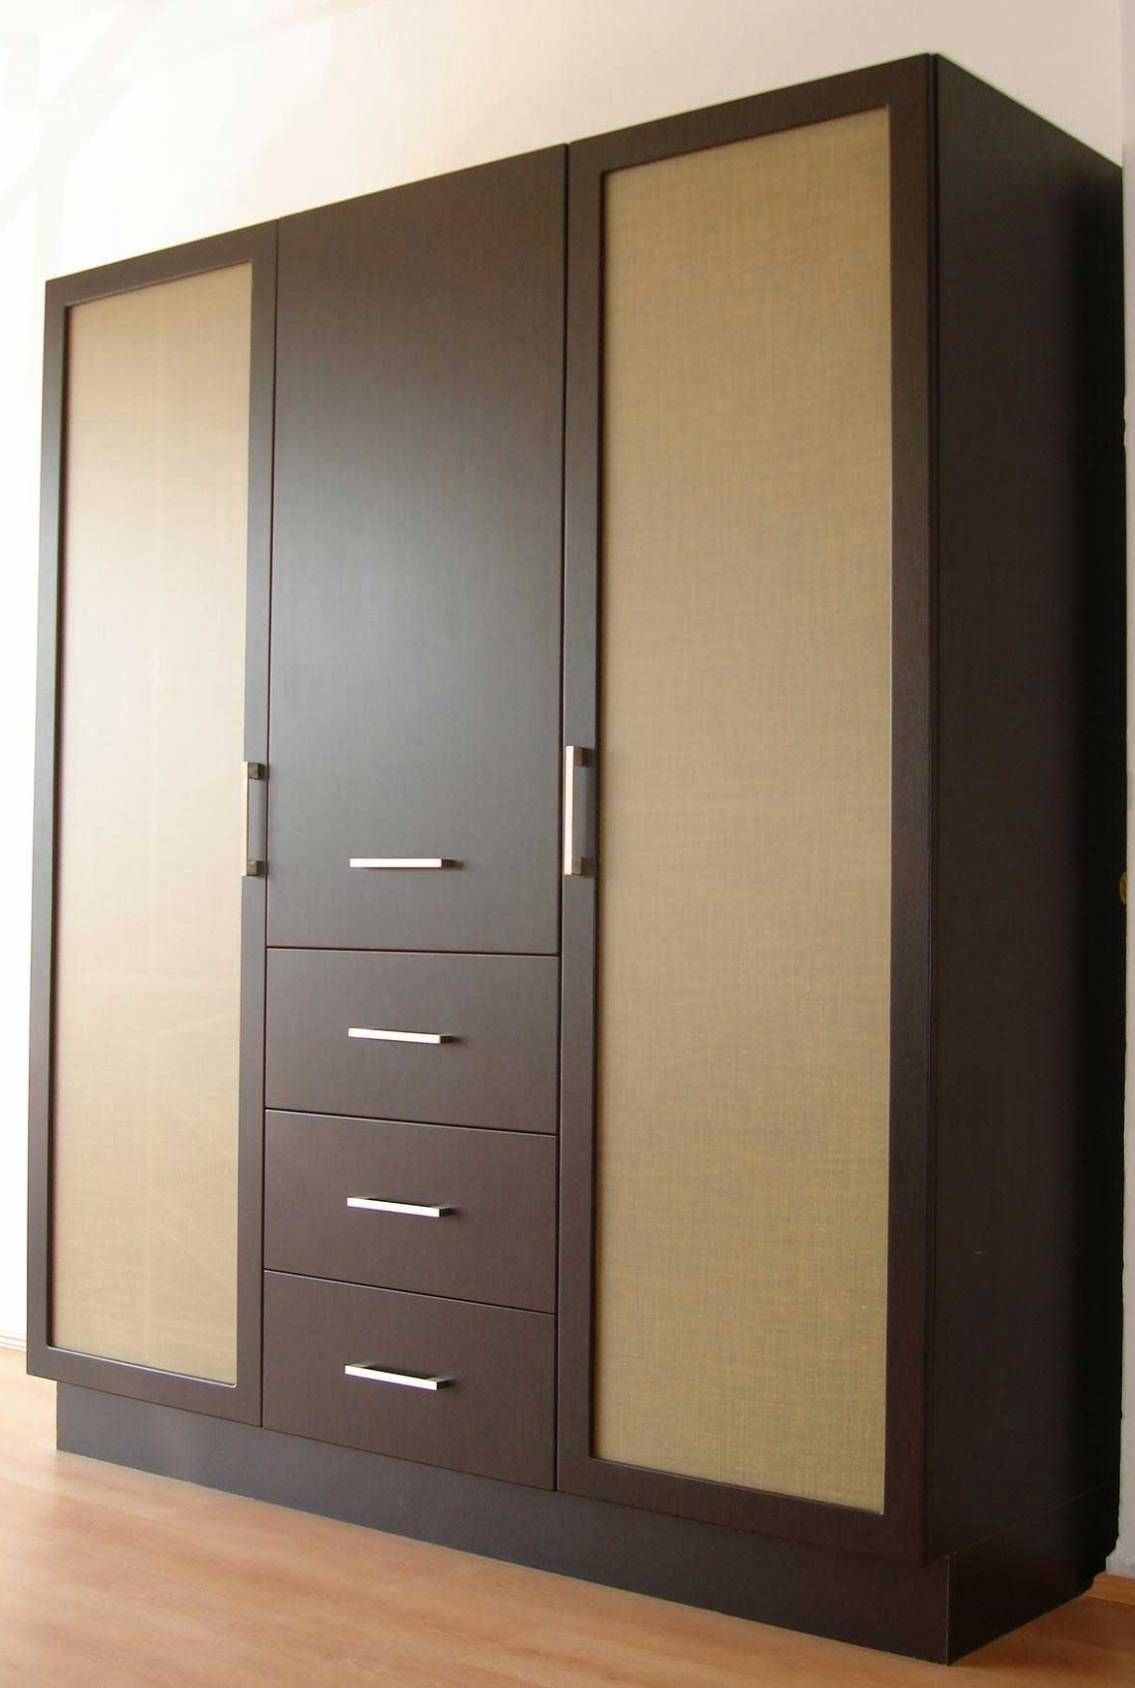 15 Contemporary Wooden House Designs 15 Best Collection Of Modern And Contemporary Wardrob Wardrobe Design Modern Wardrobe Door Designs Wooden Wardrobe Design